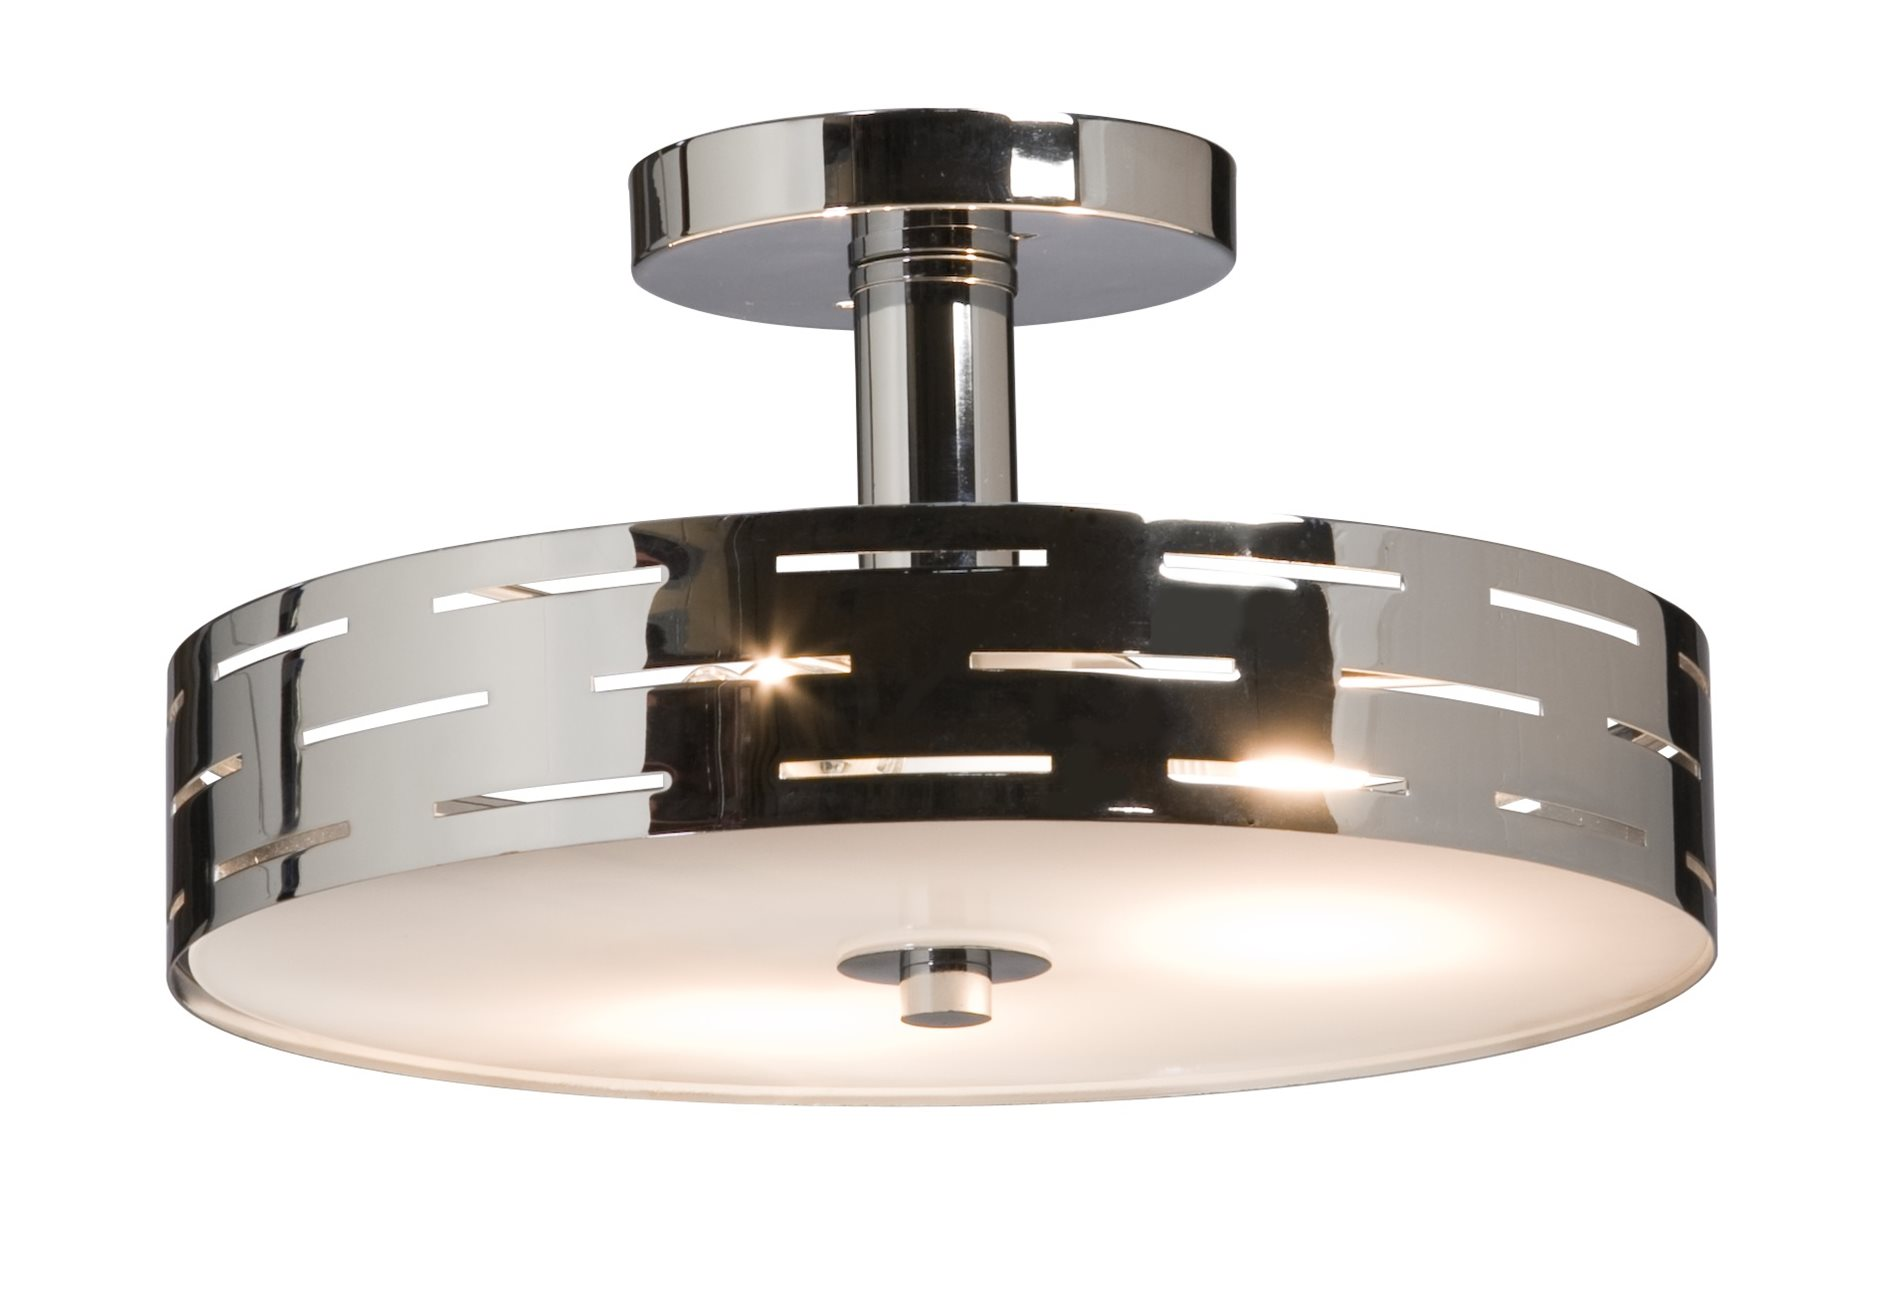 Leeds contemporary semi flush mount ceiling light xtra for Semi flush mount lighting modern